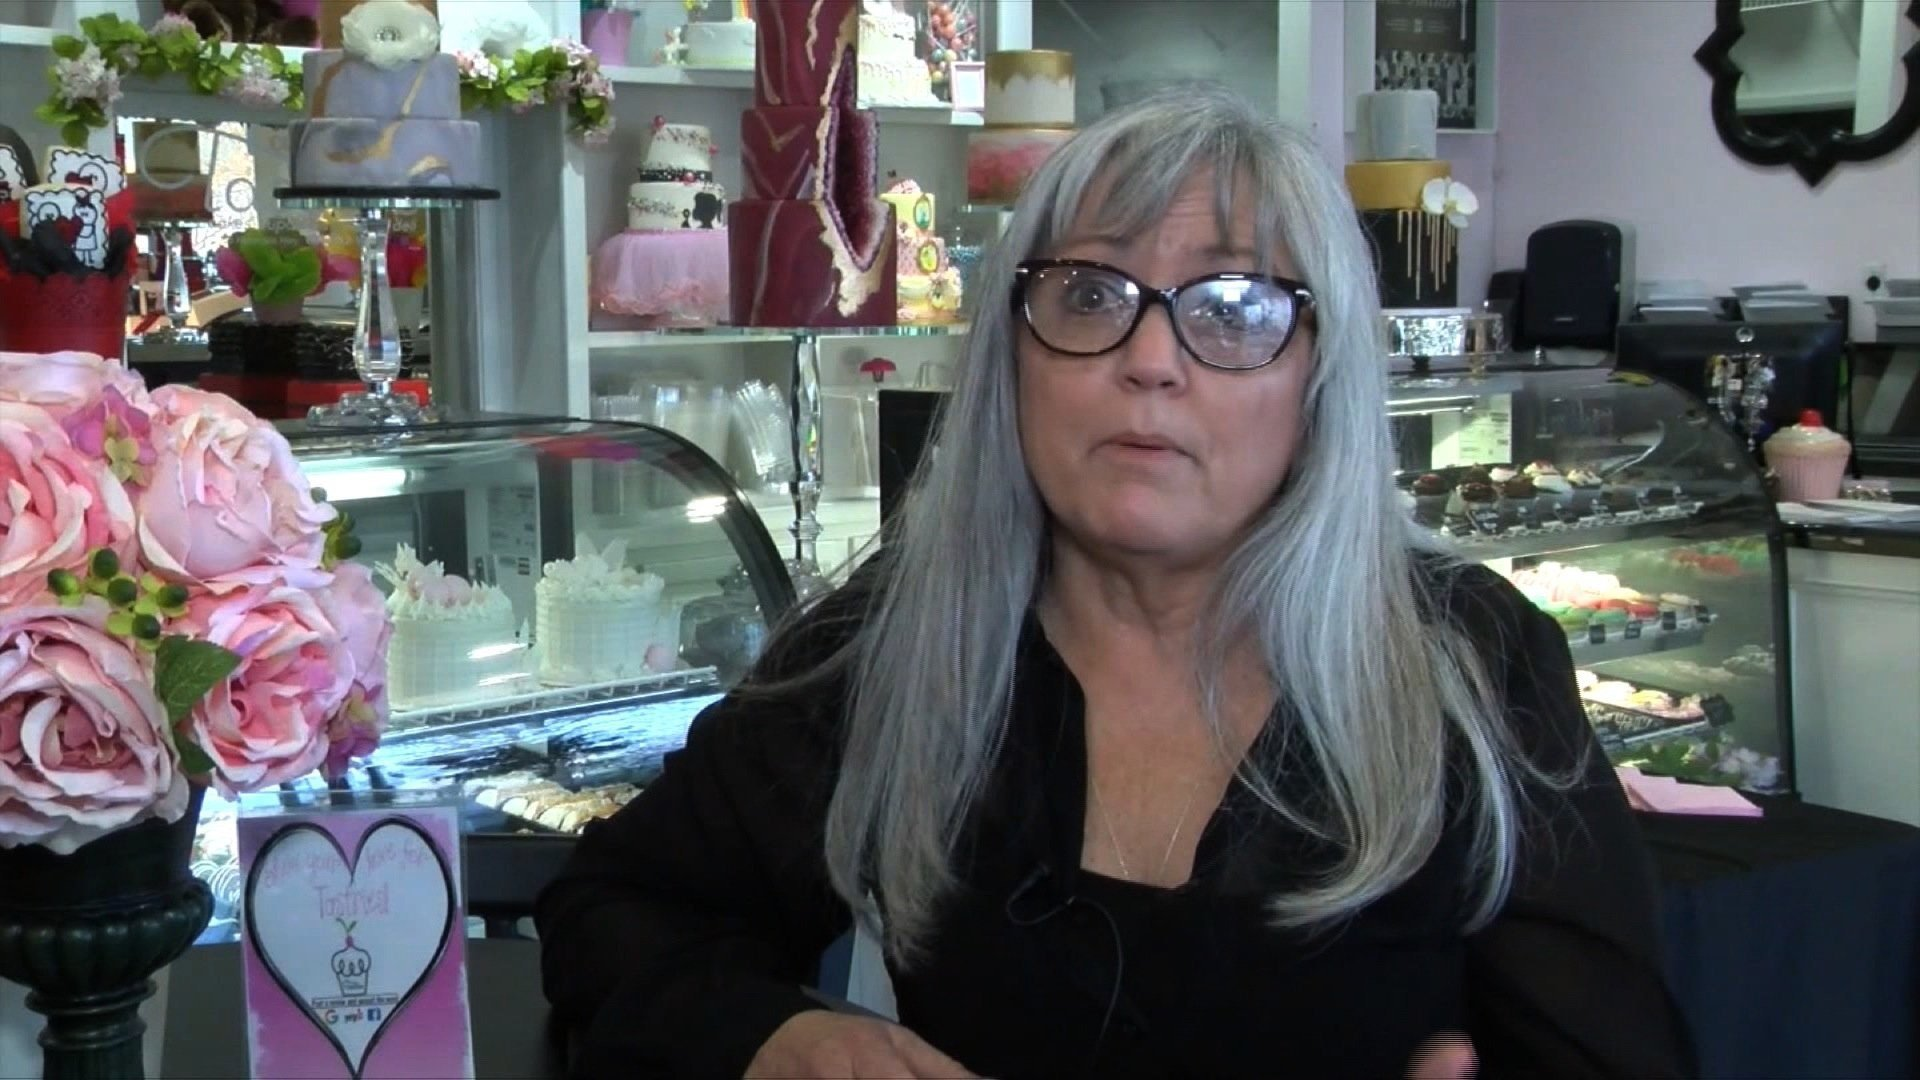 **Embargo: Bakersfield, CA**  Tastries Bakery owner Cathy Miller told Eileen and Mireya Rodriguez-Del Rio in August that she couldn't create a cake for their wedding because same-sex marriage clashed with her Christian faith.